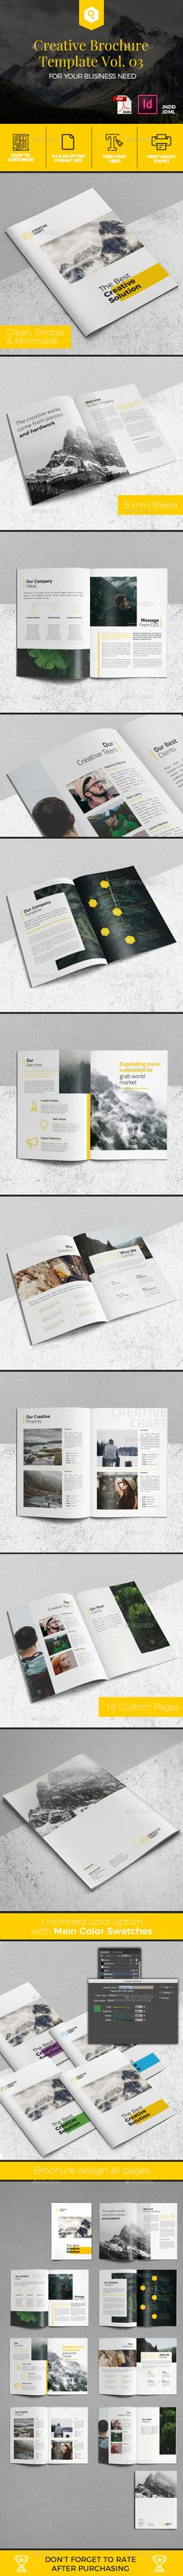 Creative Brochure Template InDesign INDD - 16 Pages A4 & US Letter